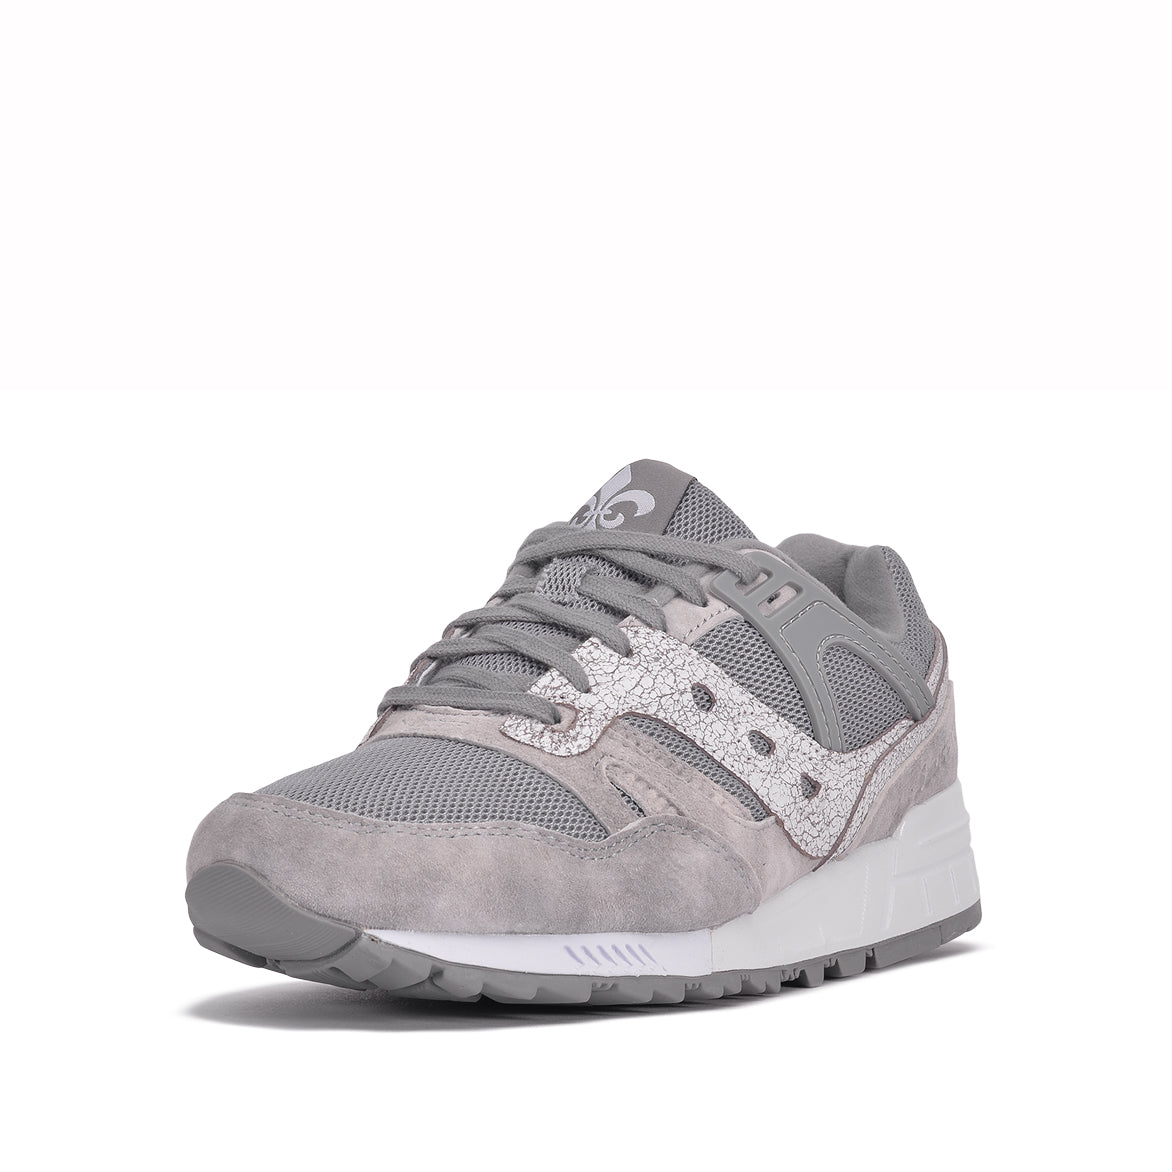 "GRID SD ""GARDEN DISTRICT"" - GREY / WHITE"